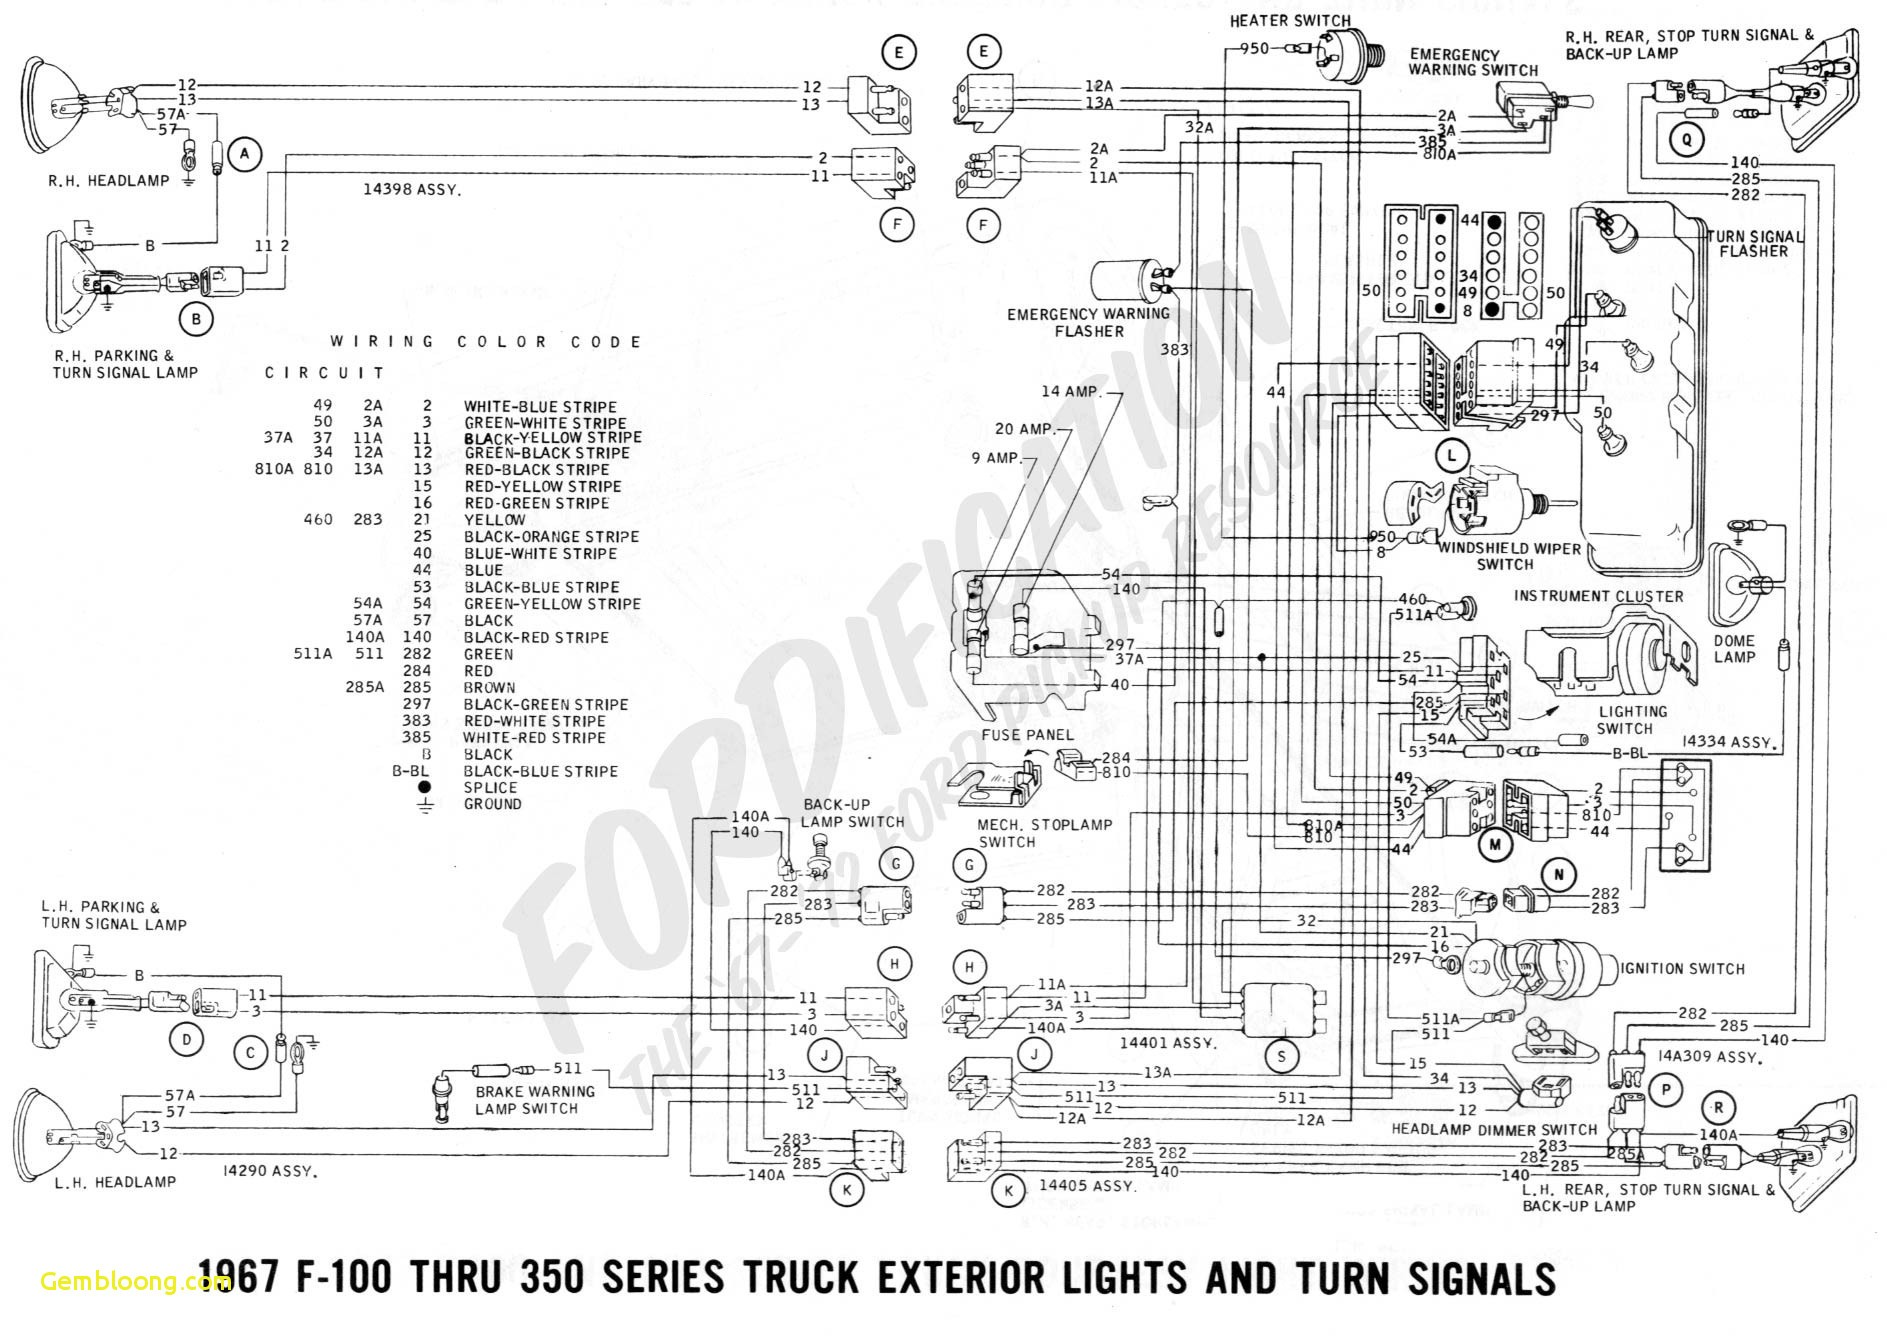 ford fiesta wiring diagram power meter engine free bmw e36 dme